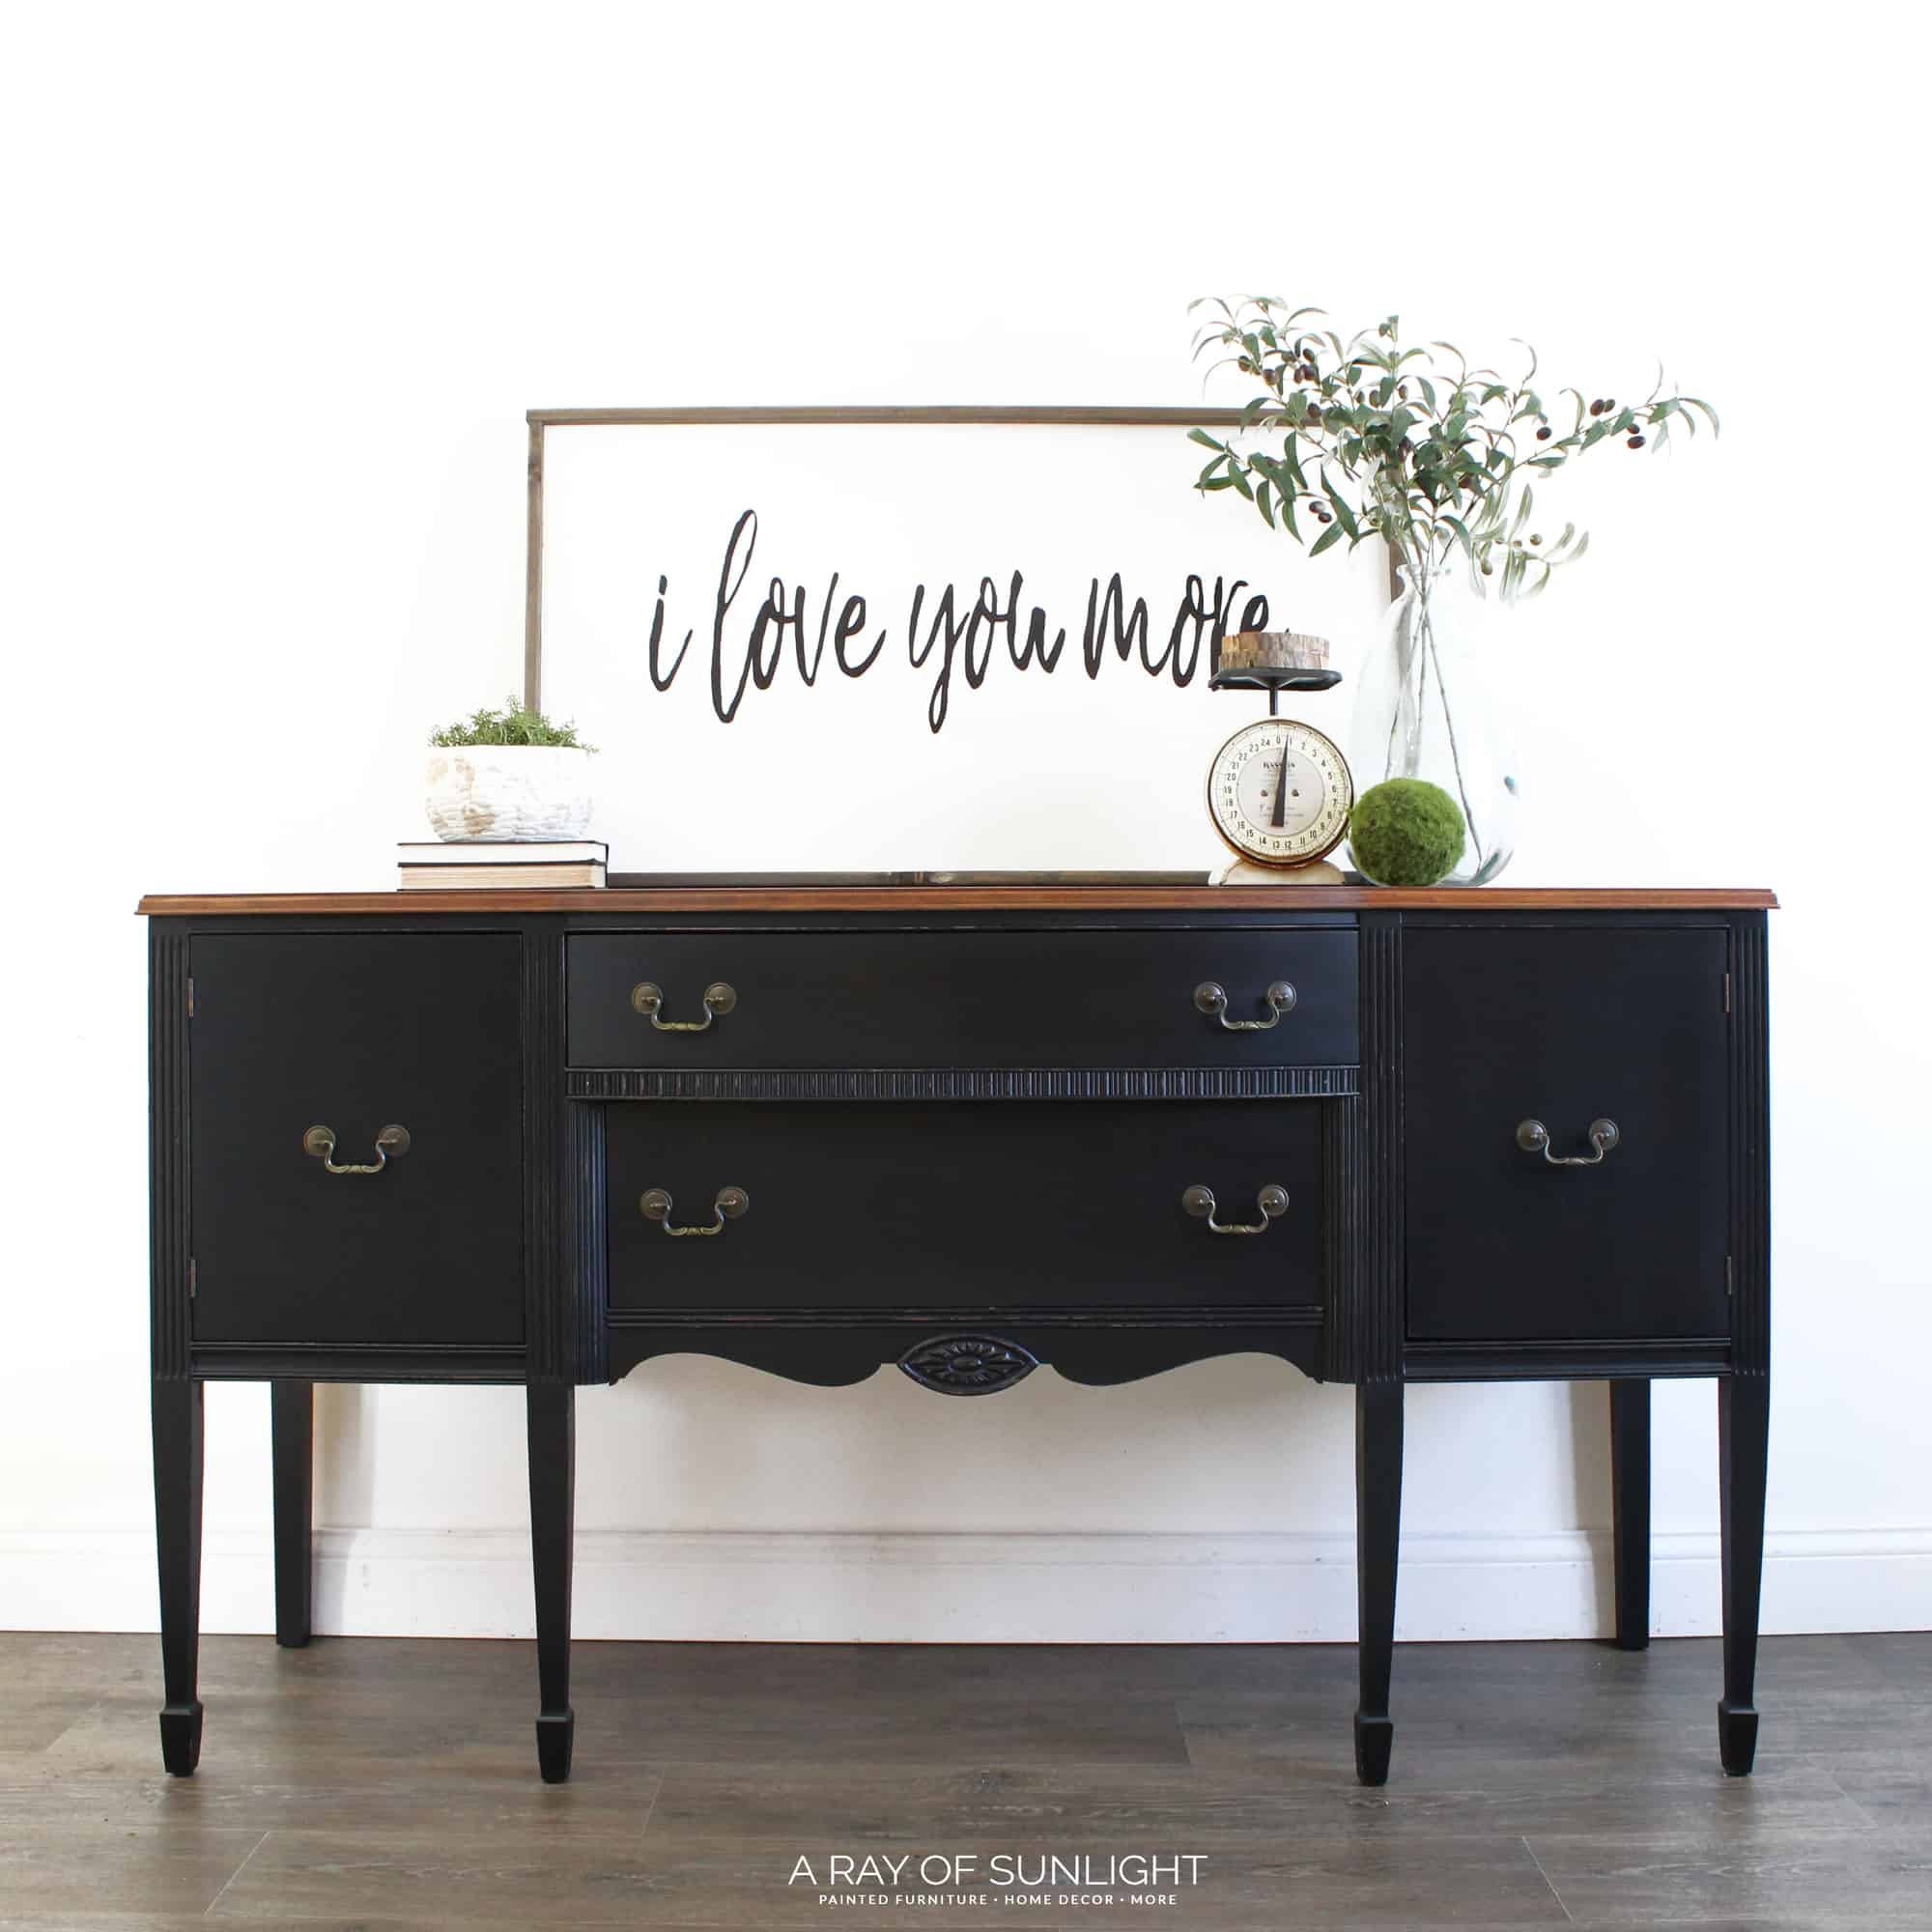 Black Buffet With Rustic Wood Top In Black Pepper By General Finishes And  Old Barn Milk